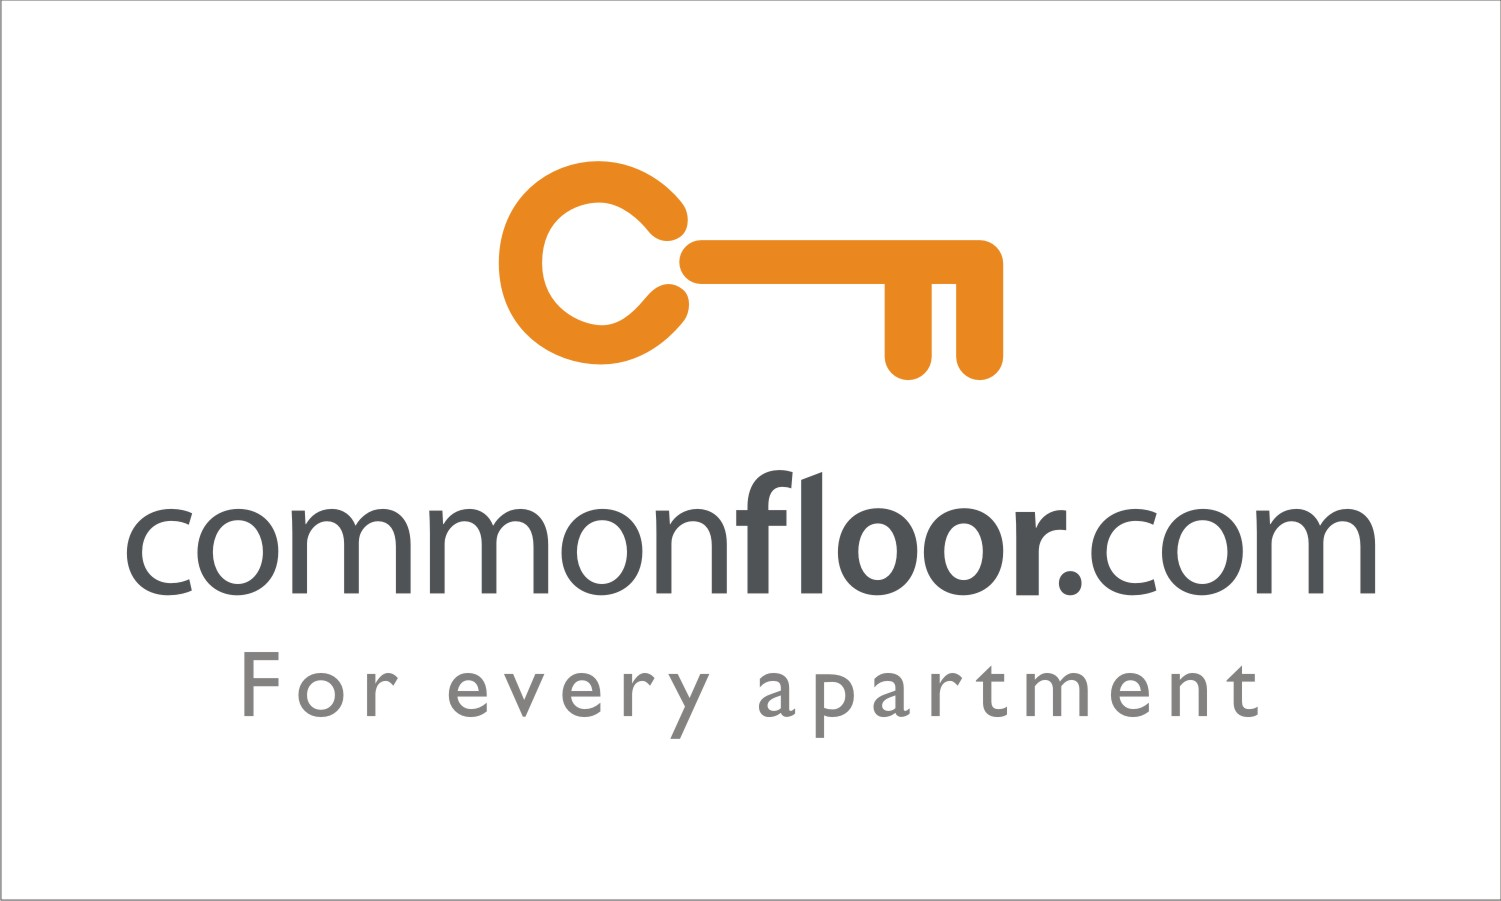 """CommonFloor introduces """"Virtual Reality"""" for consumers in Real Estate -  Blog of Himanshu Sheth on Technology, Entrepreneurship and Business"""